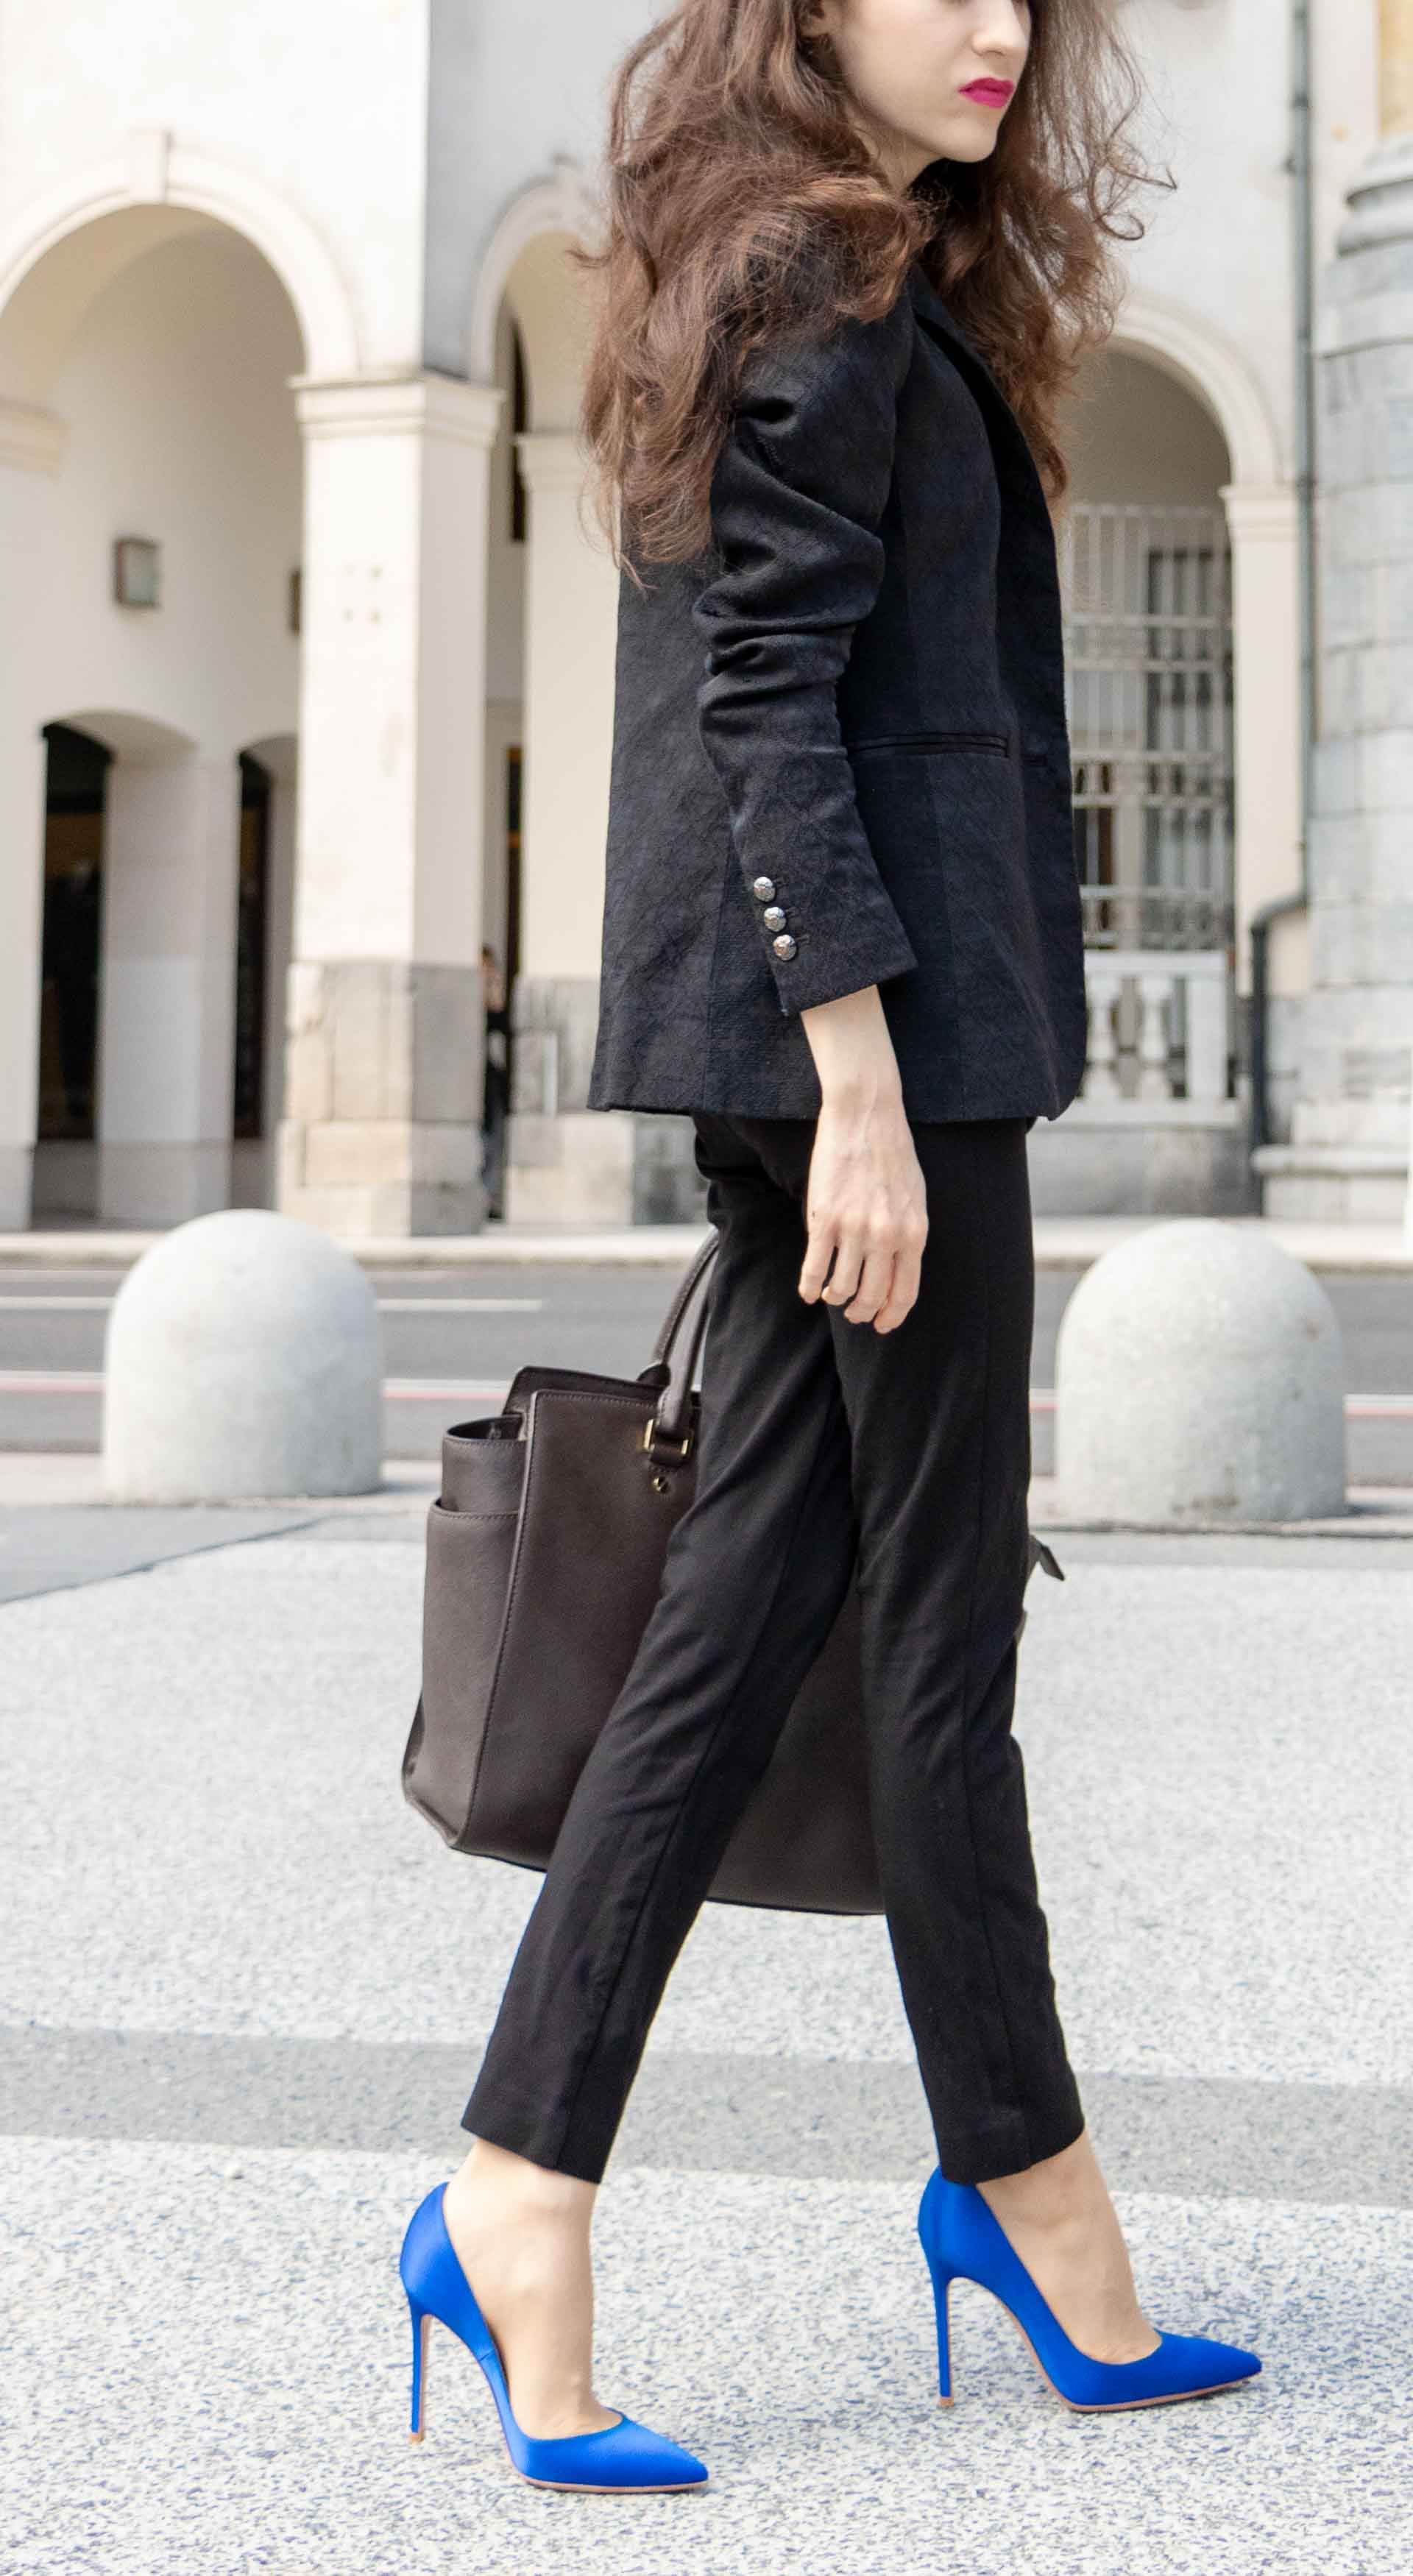 Beautiful Slovenian Fashion Blogger Veronika Lipar of Brunette from Wall dressed in wearing black pantsuit, brown Michael Kors selma top handle tote bag, Gianvito Rossi blue satin court shoes for work